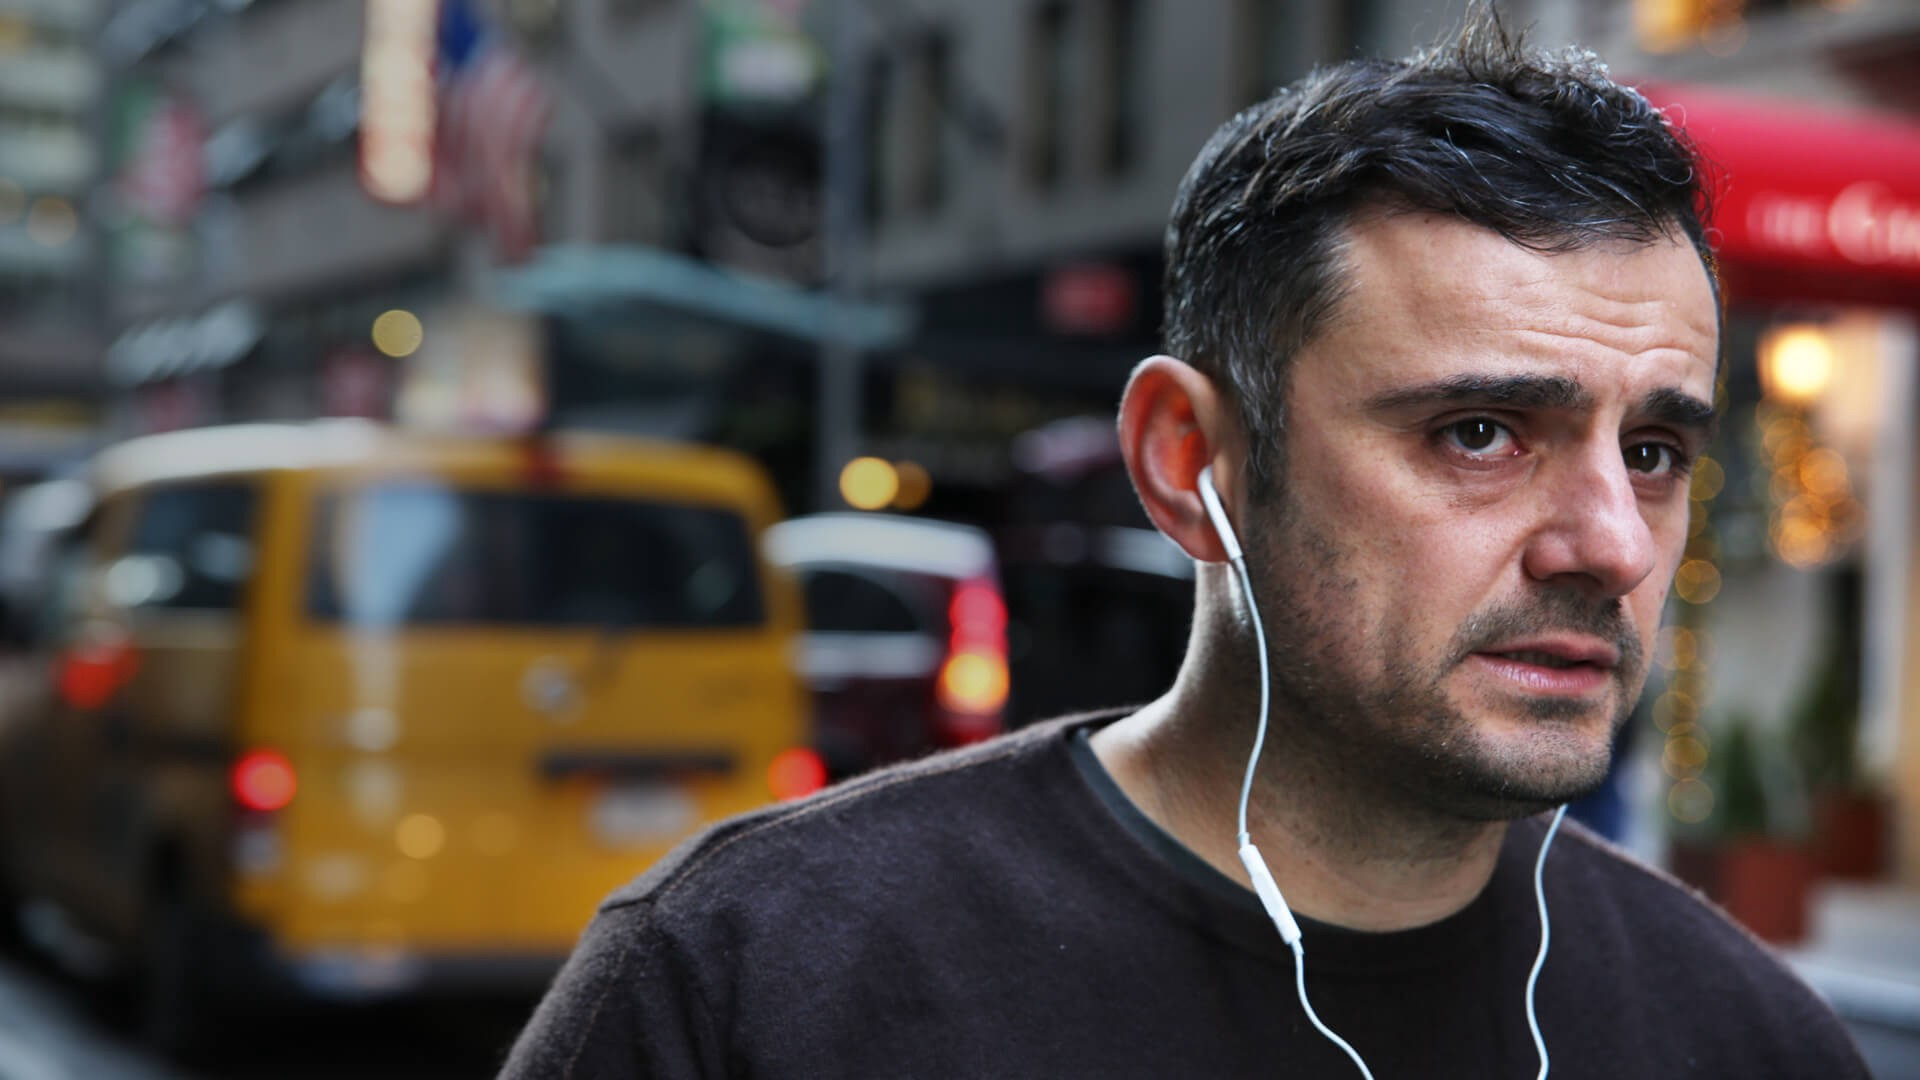 You'll Never Watch Another Gary Vee Video Again